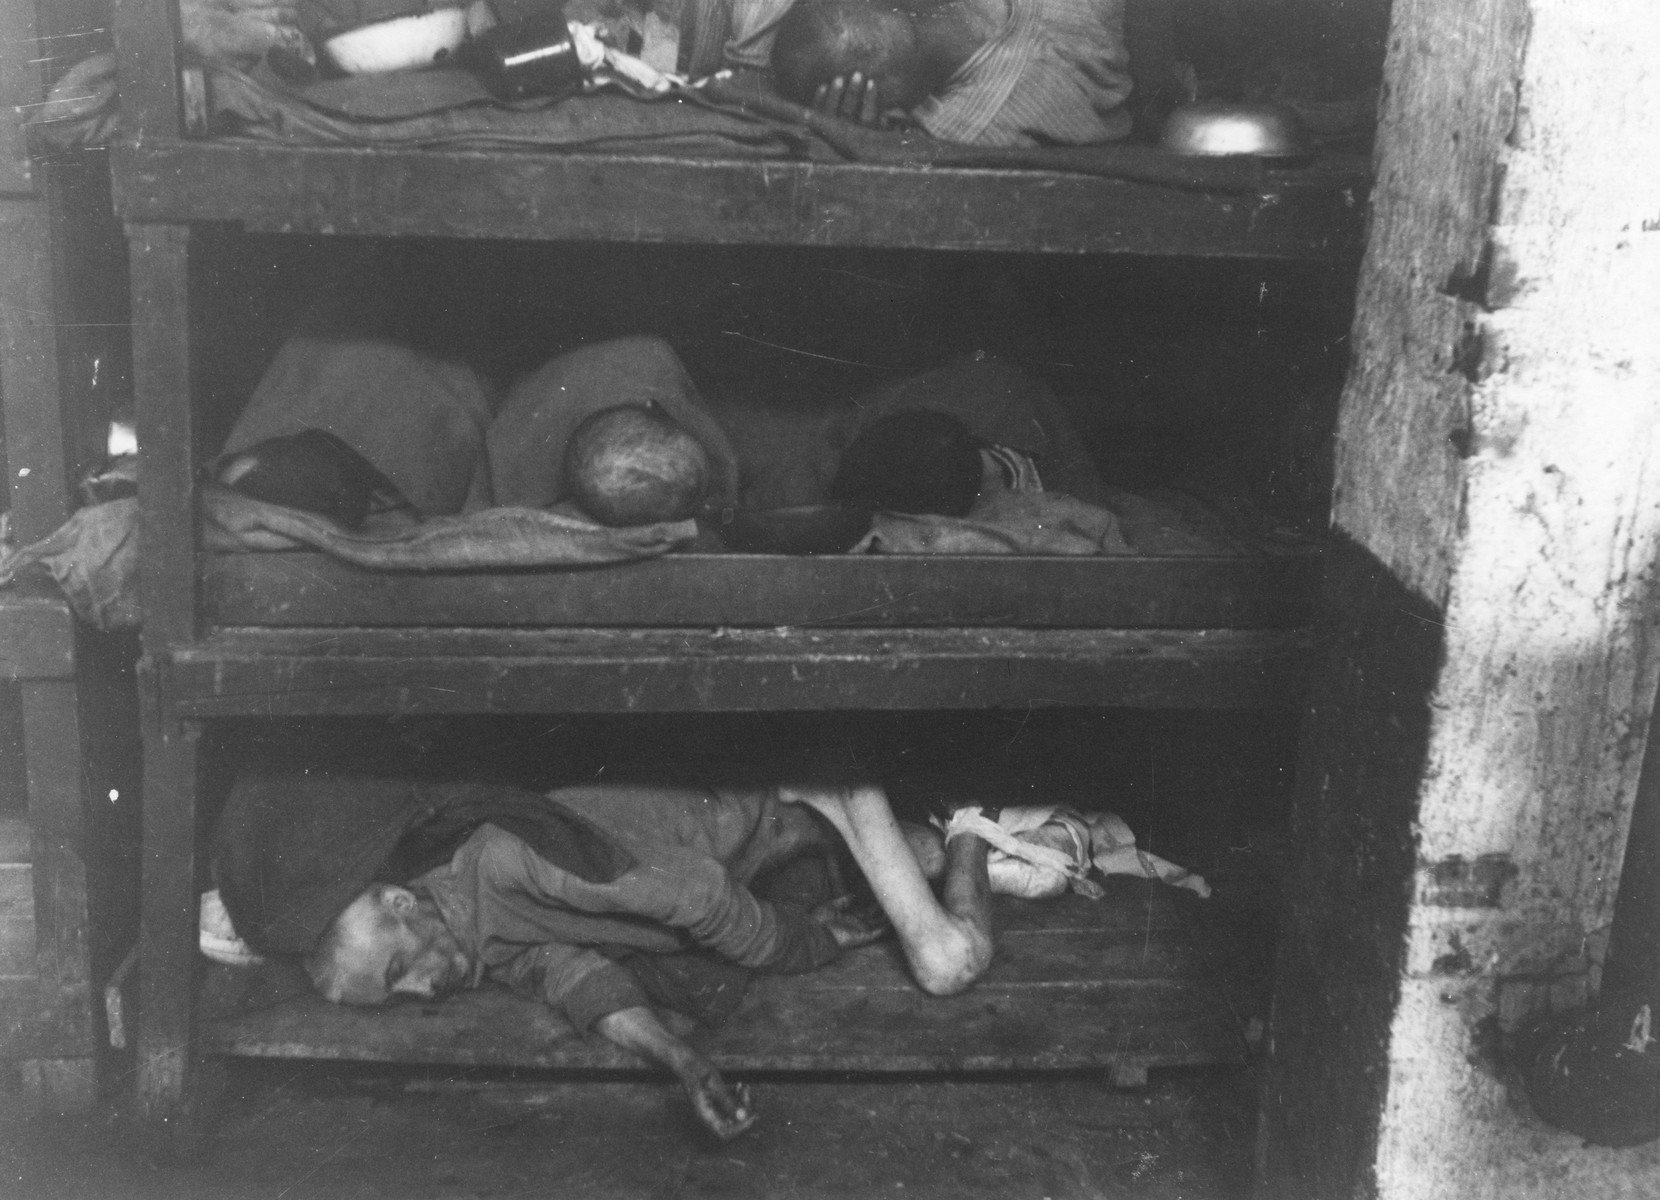 "Survivors lie in multi-tiered bunks in the hospital barracks in Buchenwald.   The original caption reads: ""Weimar, Germany...This is typical of a hospital ward in Buchenwald concentration camp, where six prisoners were huddled together on one tier.  The man on the lower tier is dead."""